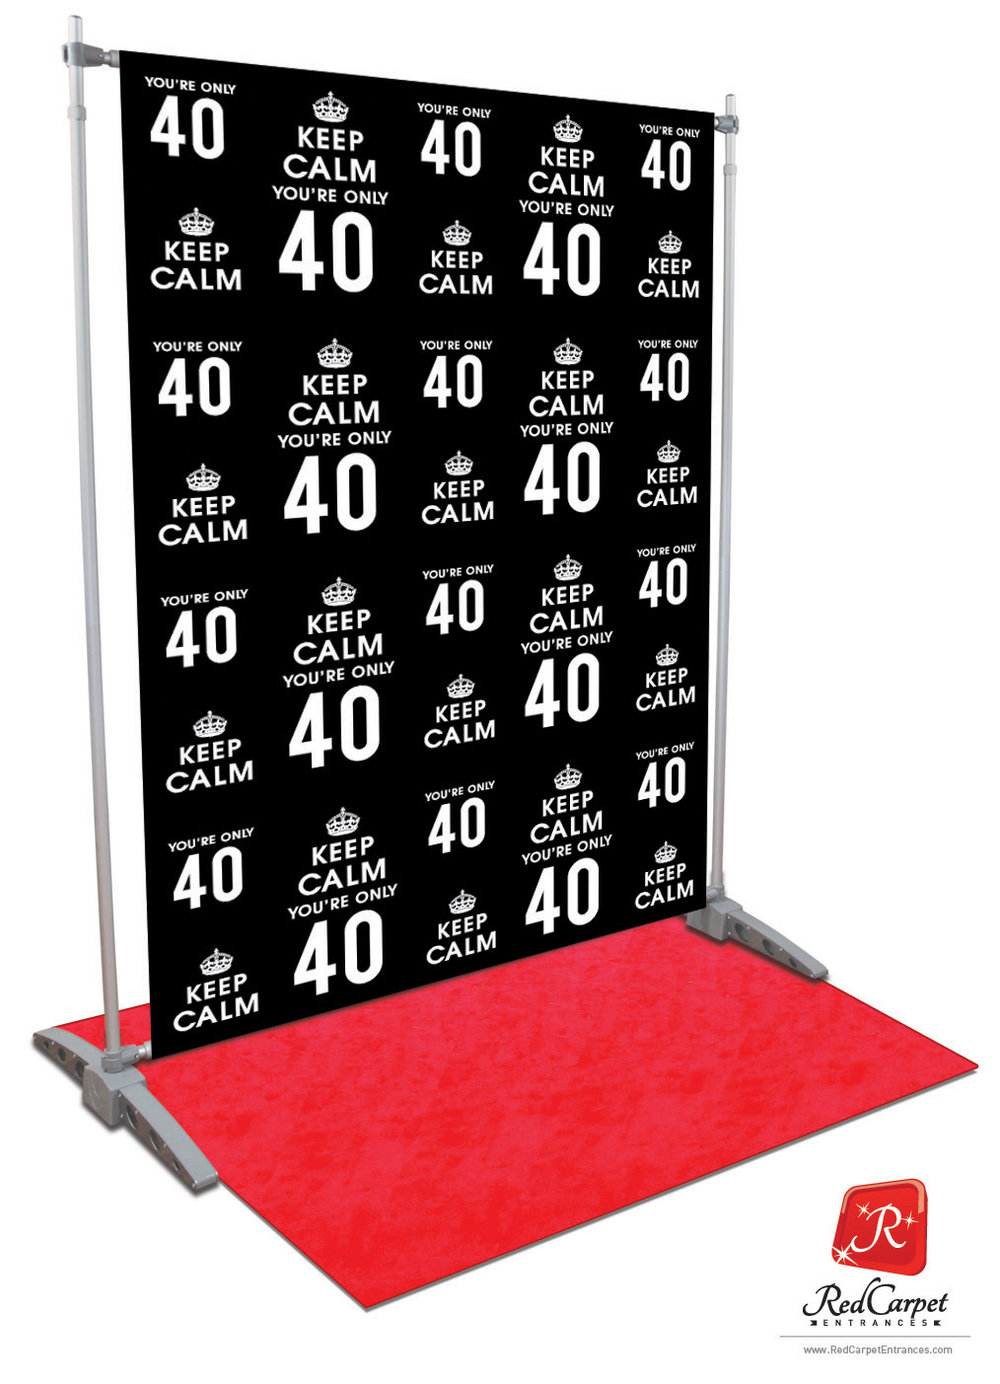 Keep Calm You Re Only 40 Red Carpet Kit Black 5x8 Red